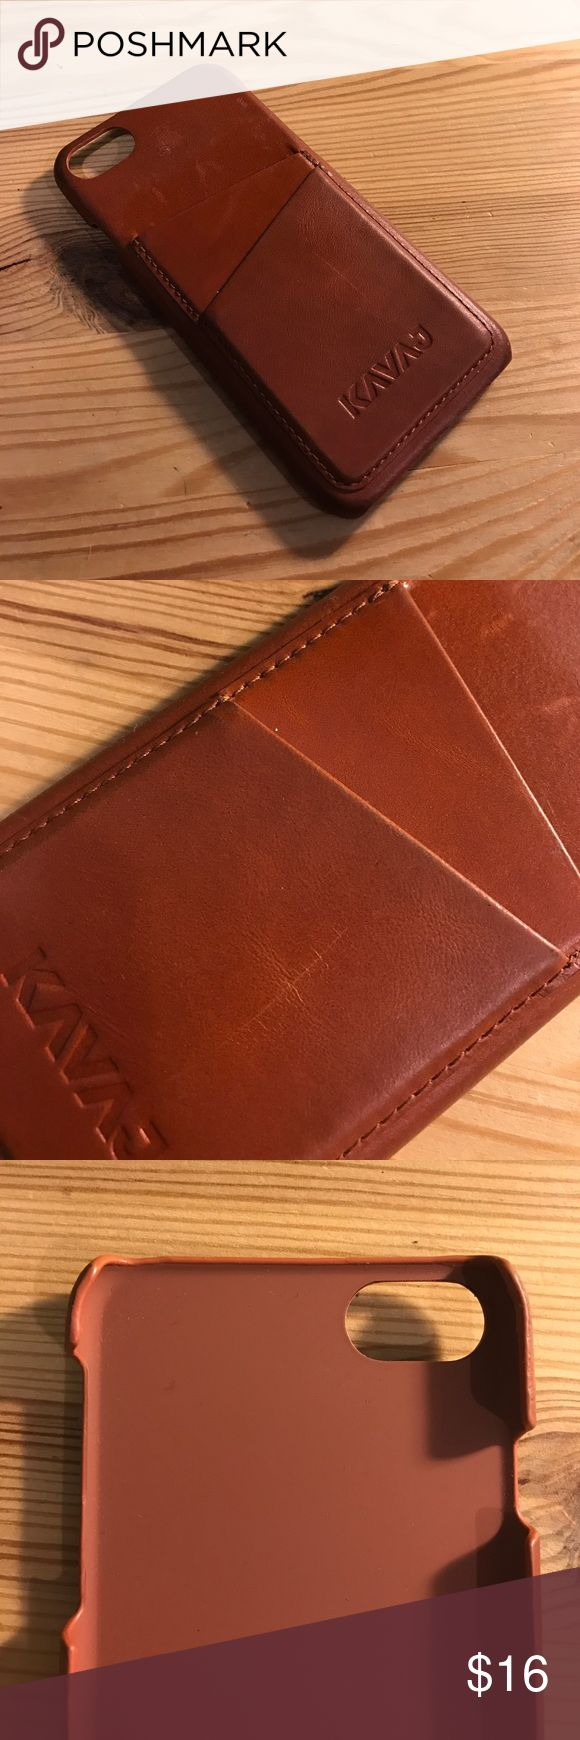 iPhone 7 leather case Hey guys, up for sale is a KavaJ iPhone 7 leather case. The case can hold up to 3 or 4 cards in the back two slots KAVAJ Accessories Phone Cases